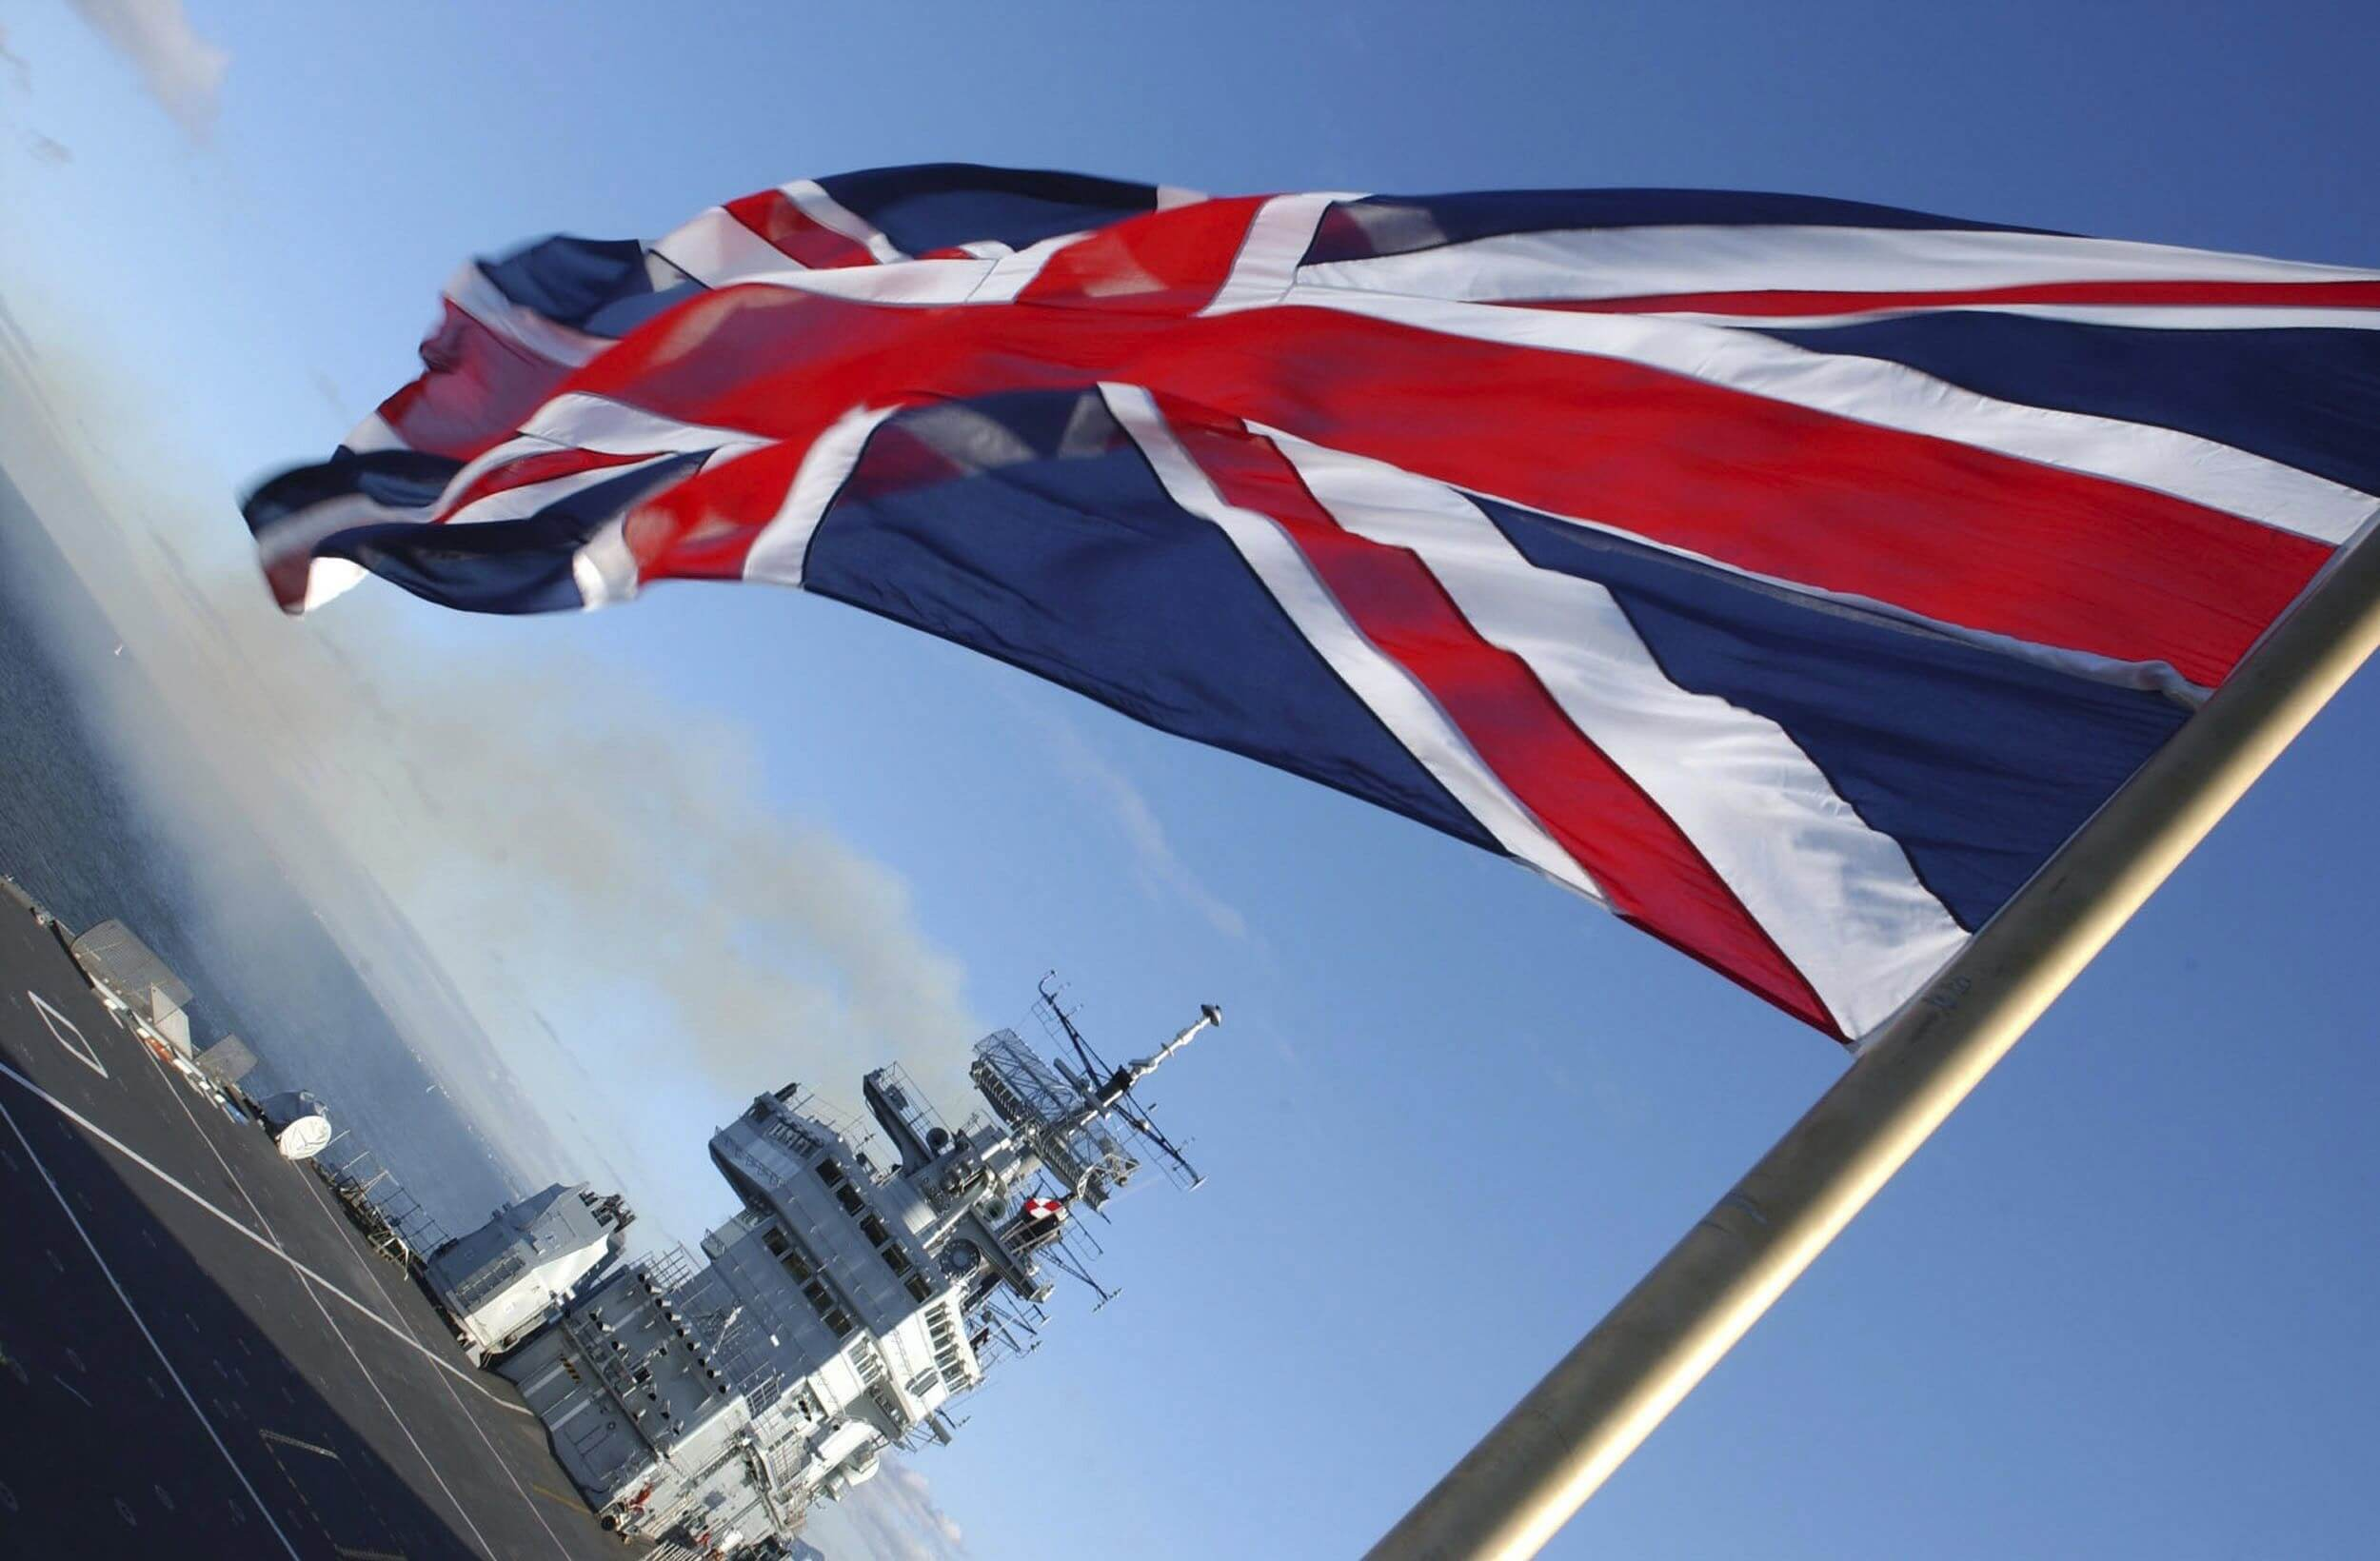 Protecting freedom of navigation: Royal Navy to escort UK-flagged ships in Strait of Hormuz